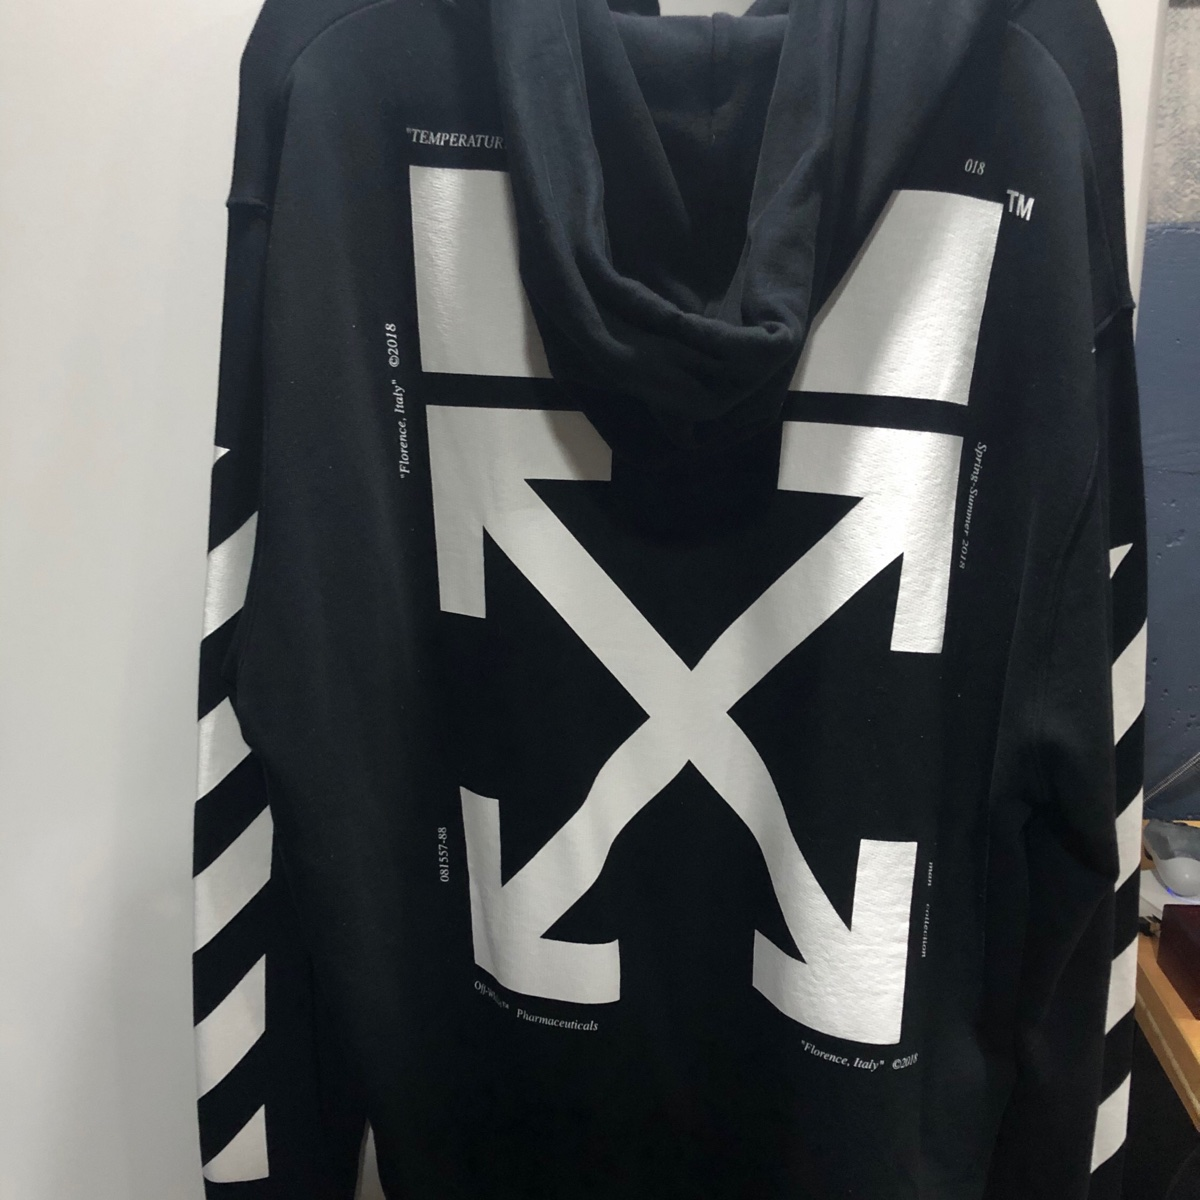 OFF-WHITE Monalisa Graphic Print Hoodie Black/White